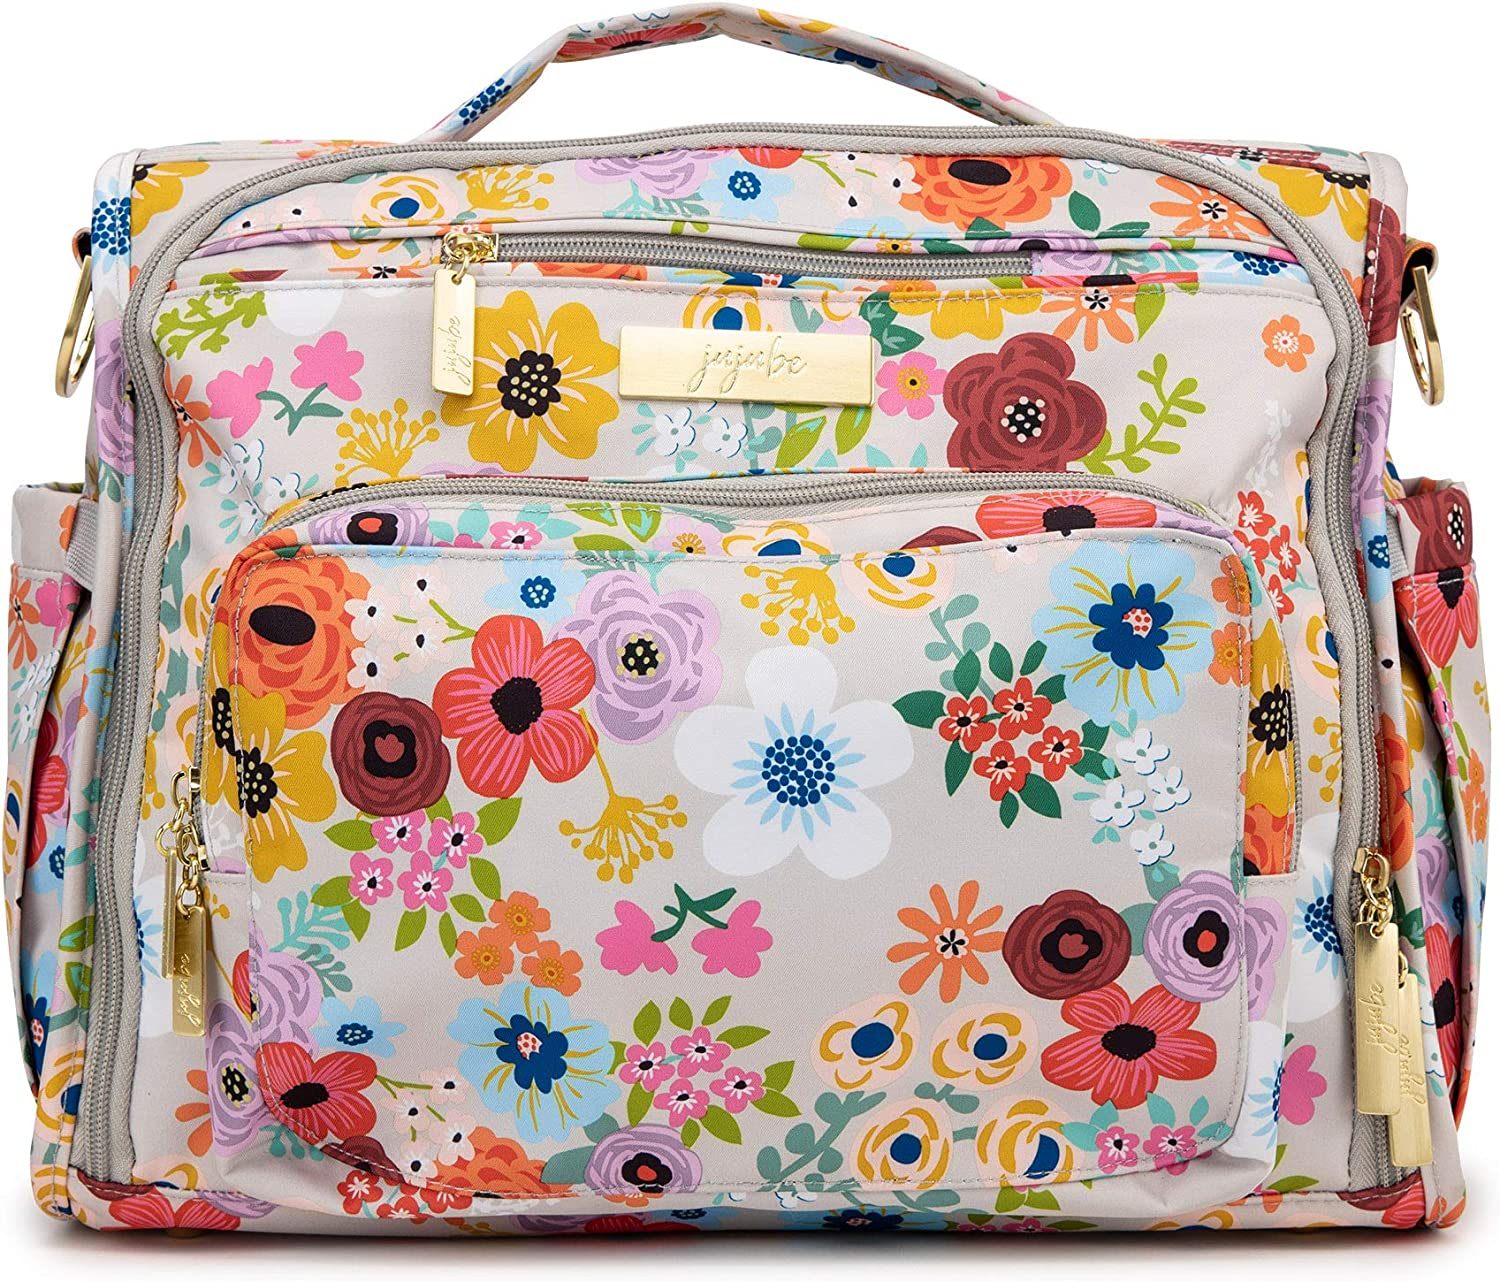 JuJuBe | BFF Convertible Diaper Backpack/Messenger Bag | Pocket Organization with Changing Pad